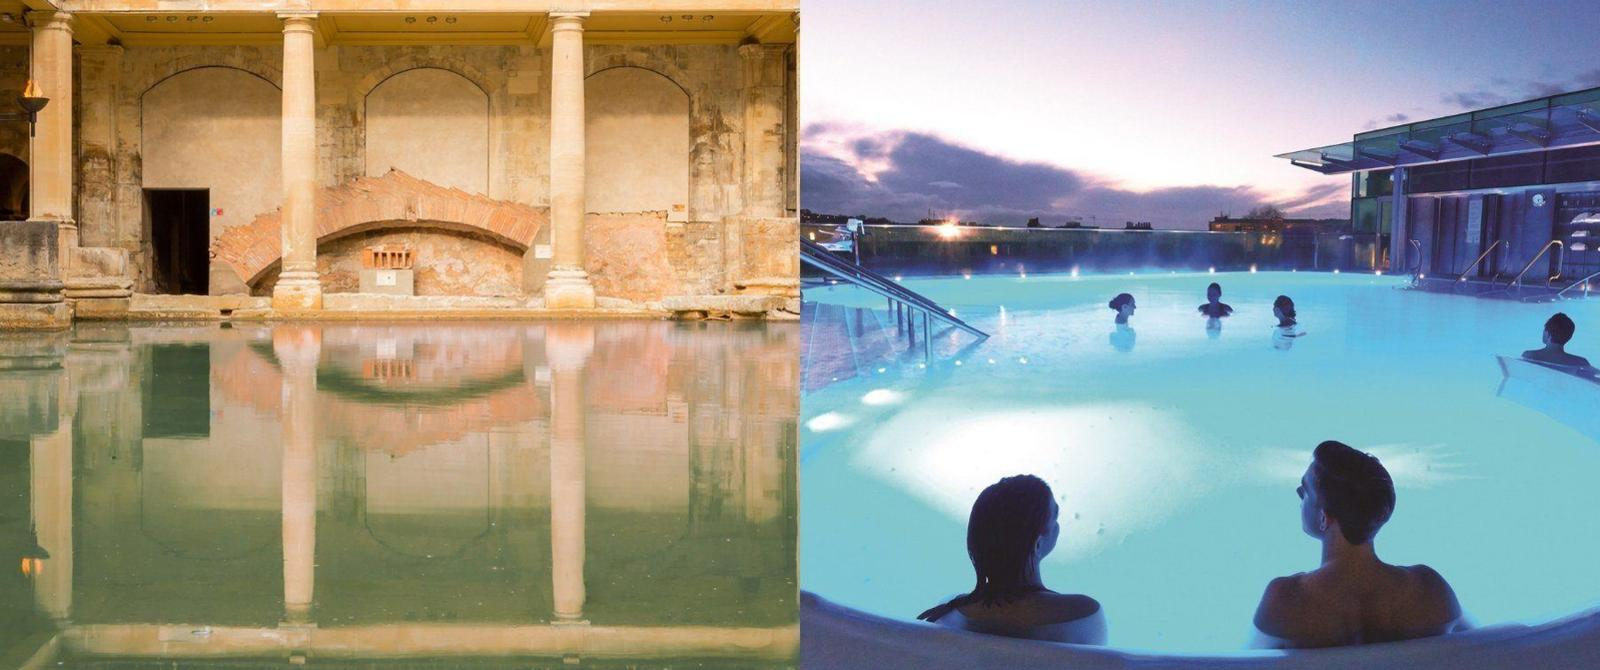 Image: The Roman Baths and Thermae Bath Spa